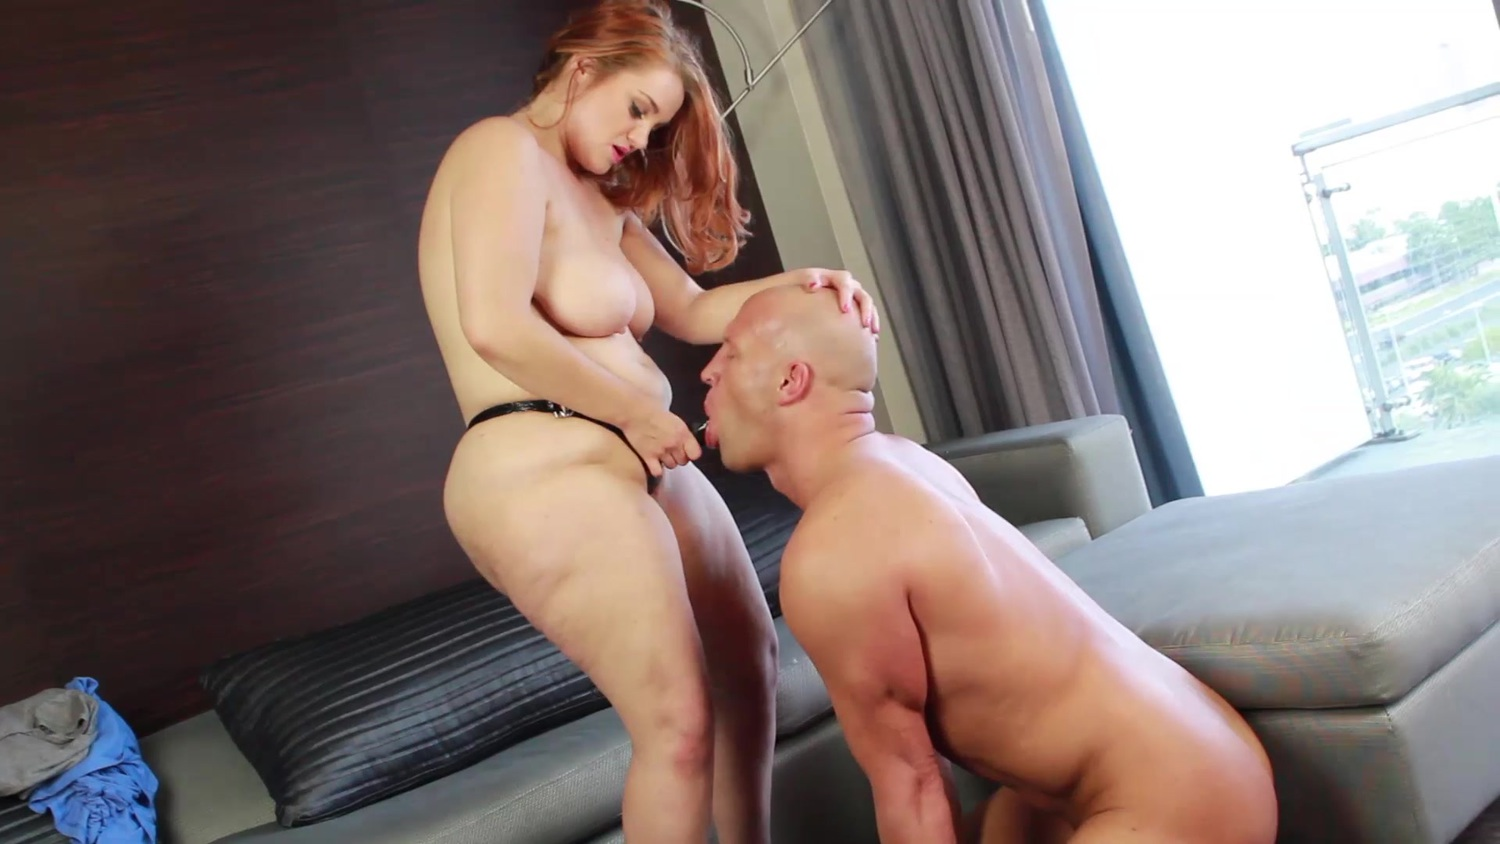 BBW Pegging Guy And Blows His Ass - Best Pegging